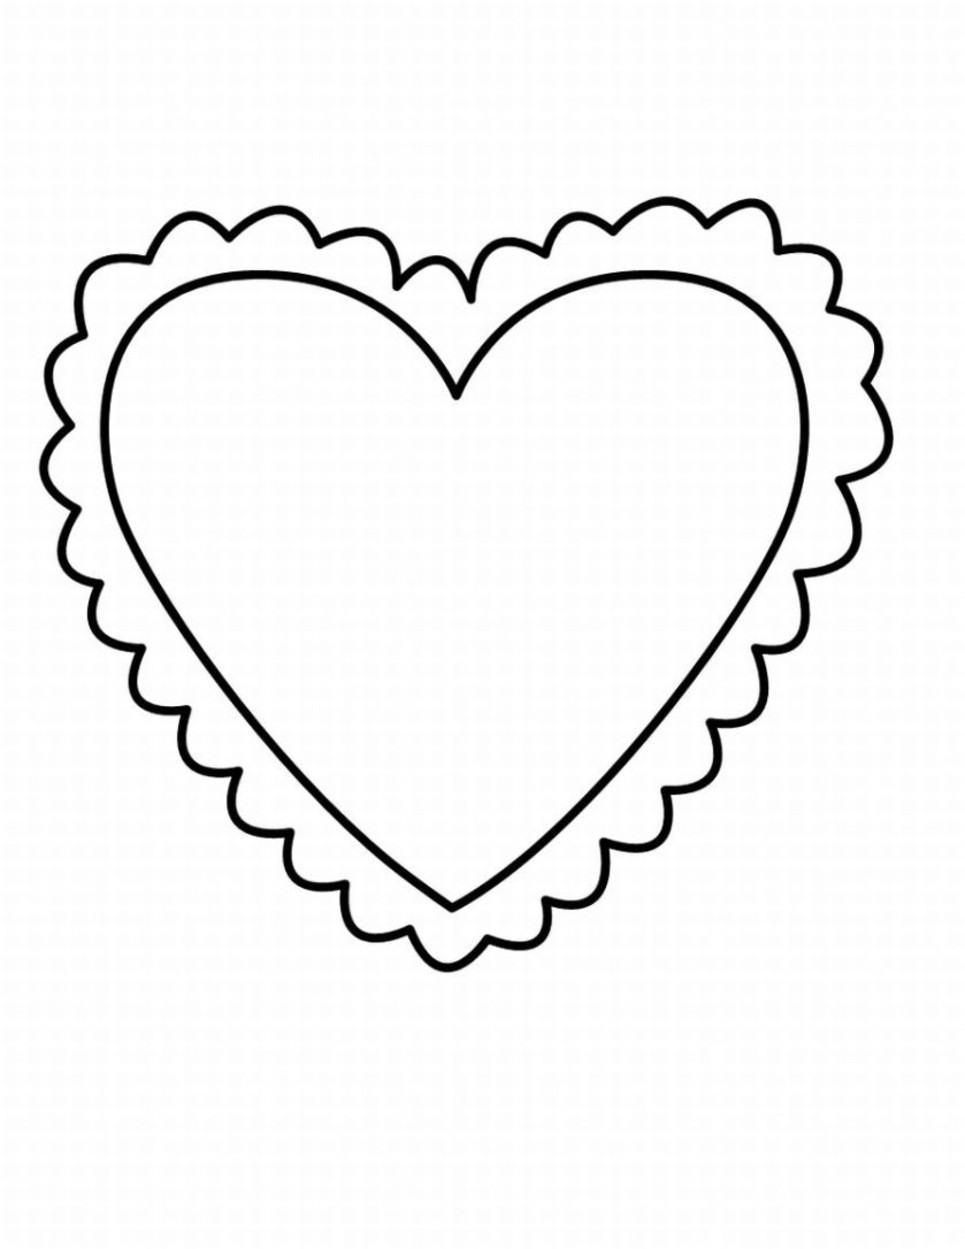 965x1249 Valentines Heart Coloring Pages Acpra